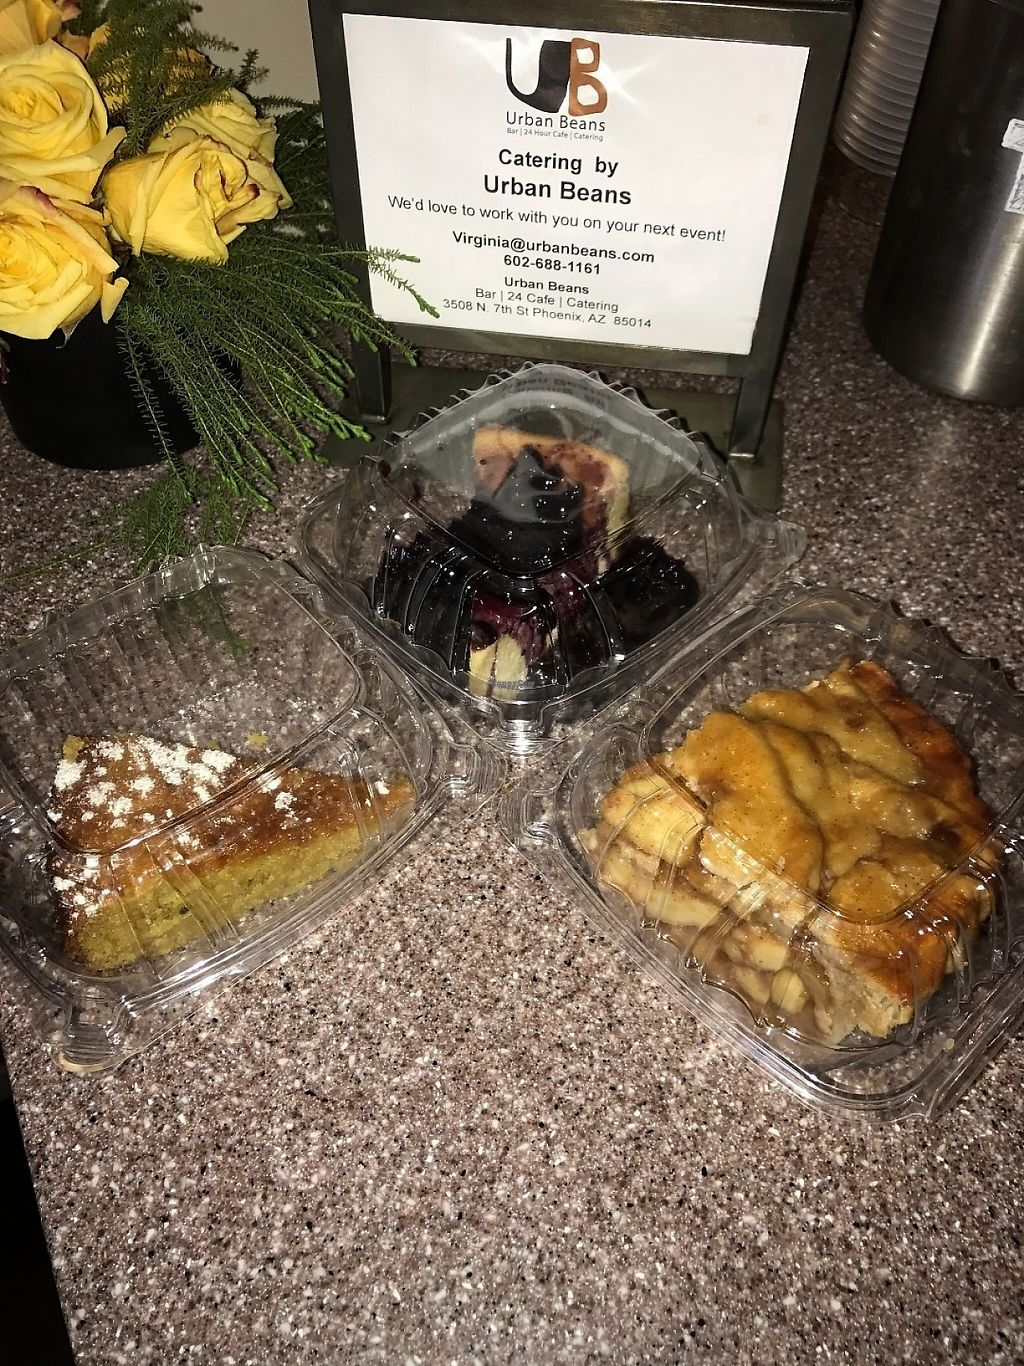 """Photo of Urban Beans  by <a href=""""/members/profile/Tigra220"""">Tigra220</a> <br/>desserts to go <br/> March 10, 2017  - <a href='/contact/abuse/image/52599/234763'>Report</a>"""